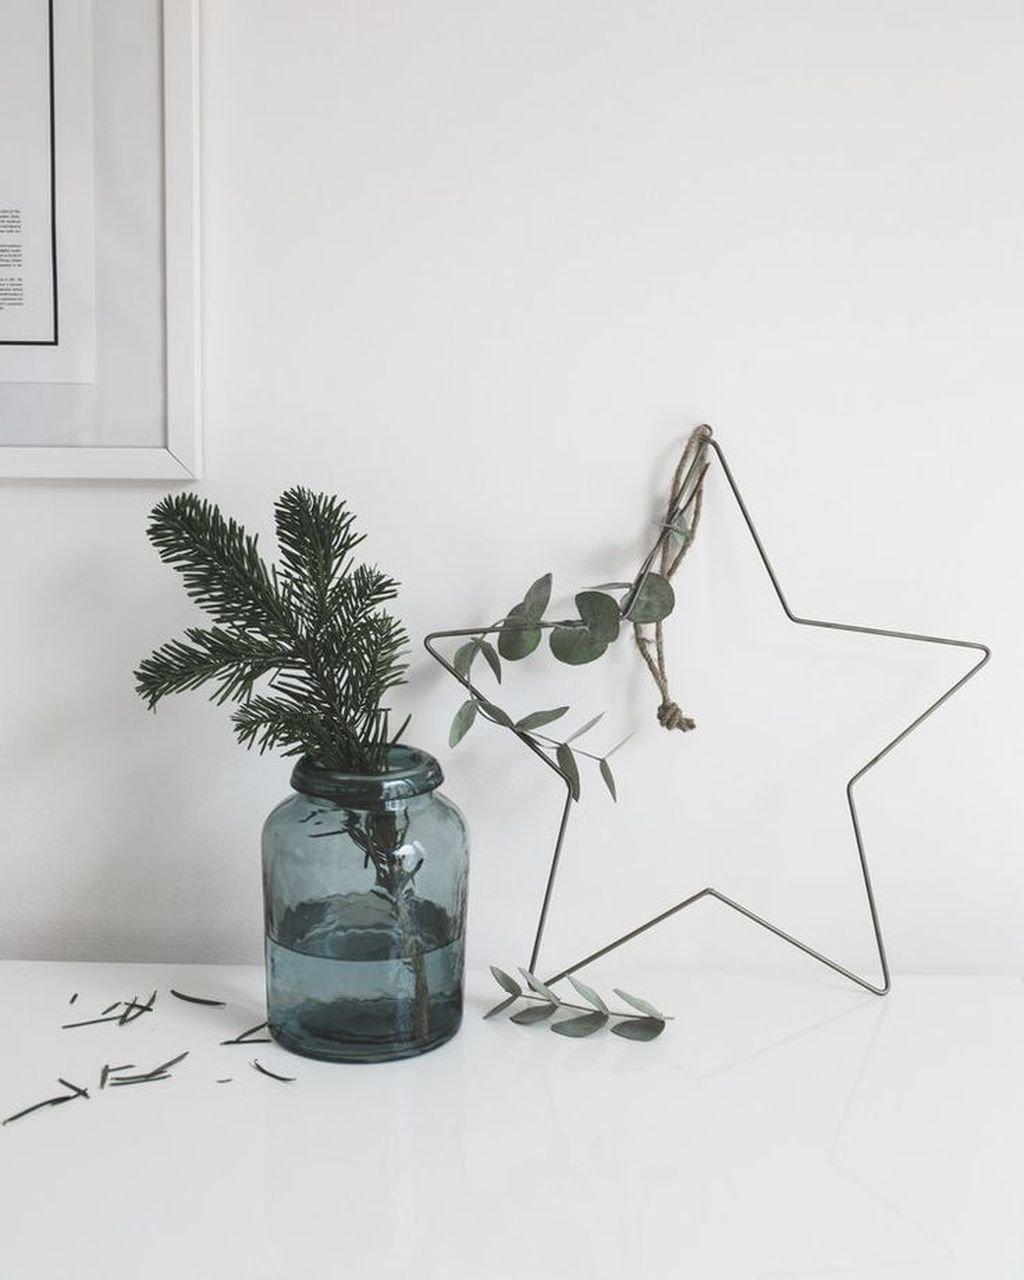 Popular Minimalist Winter Decor Ideas You Should Try 05